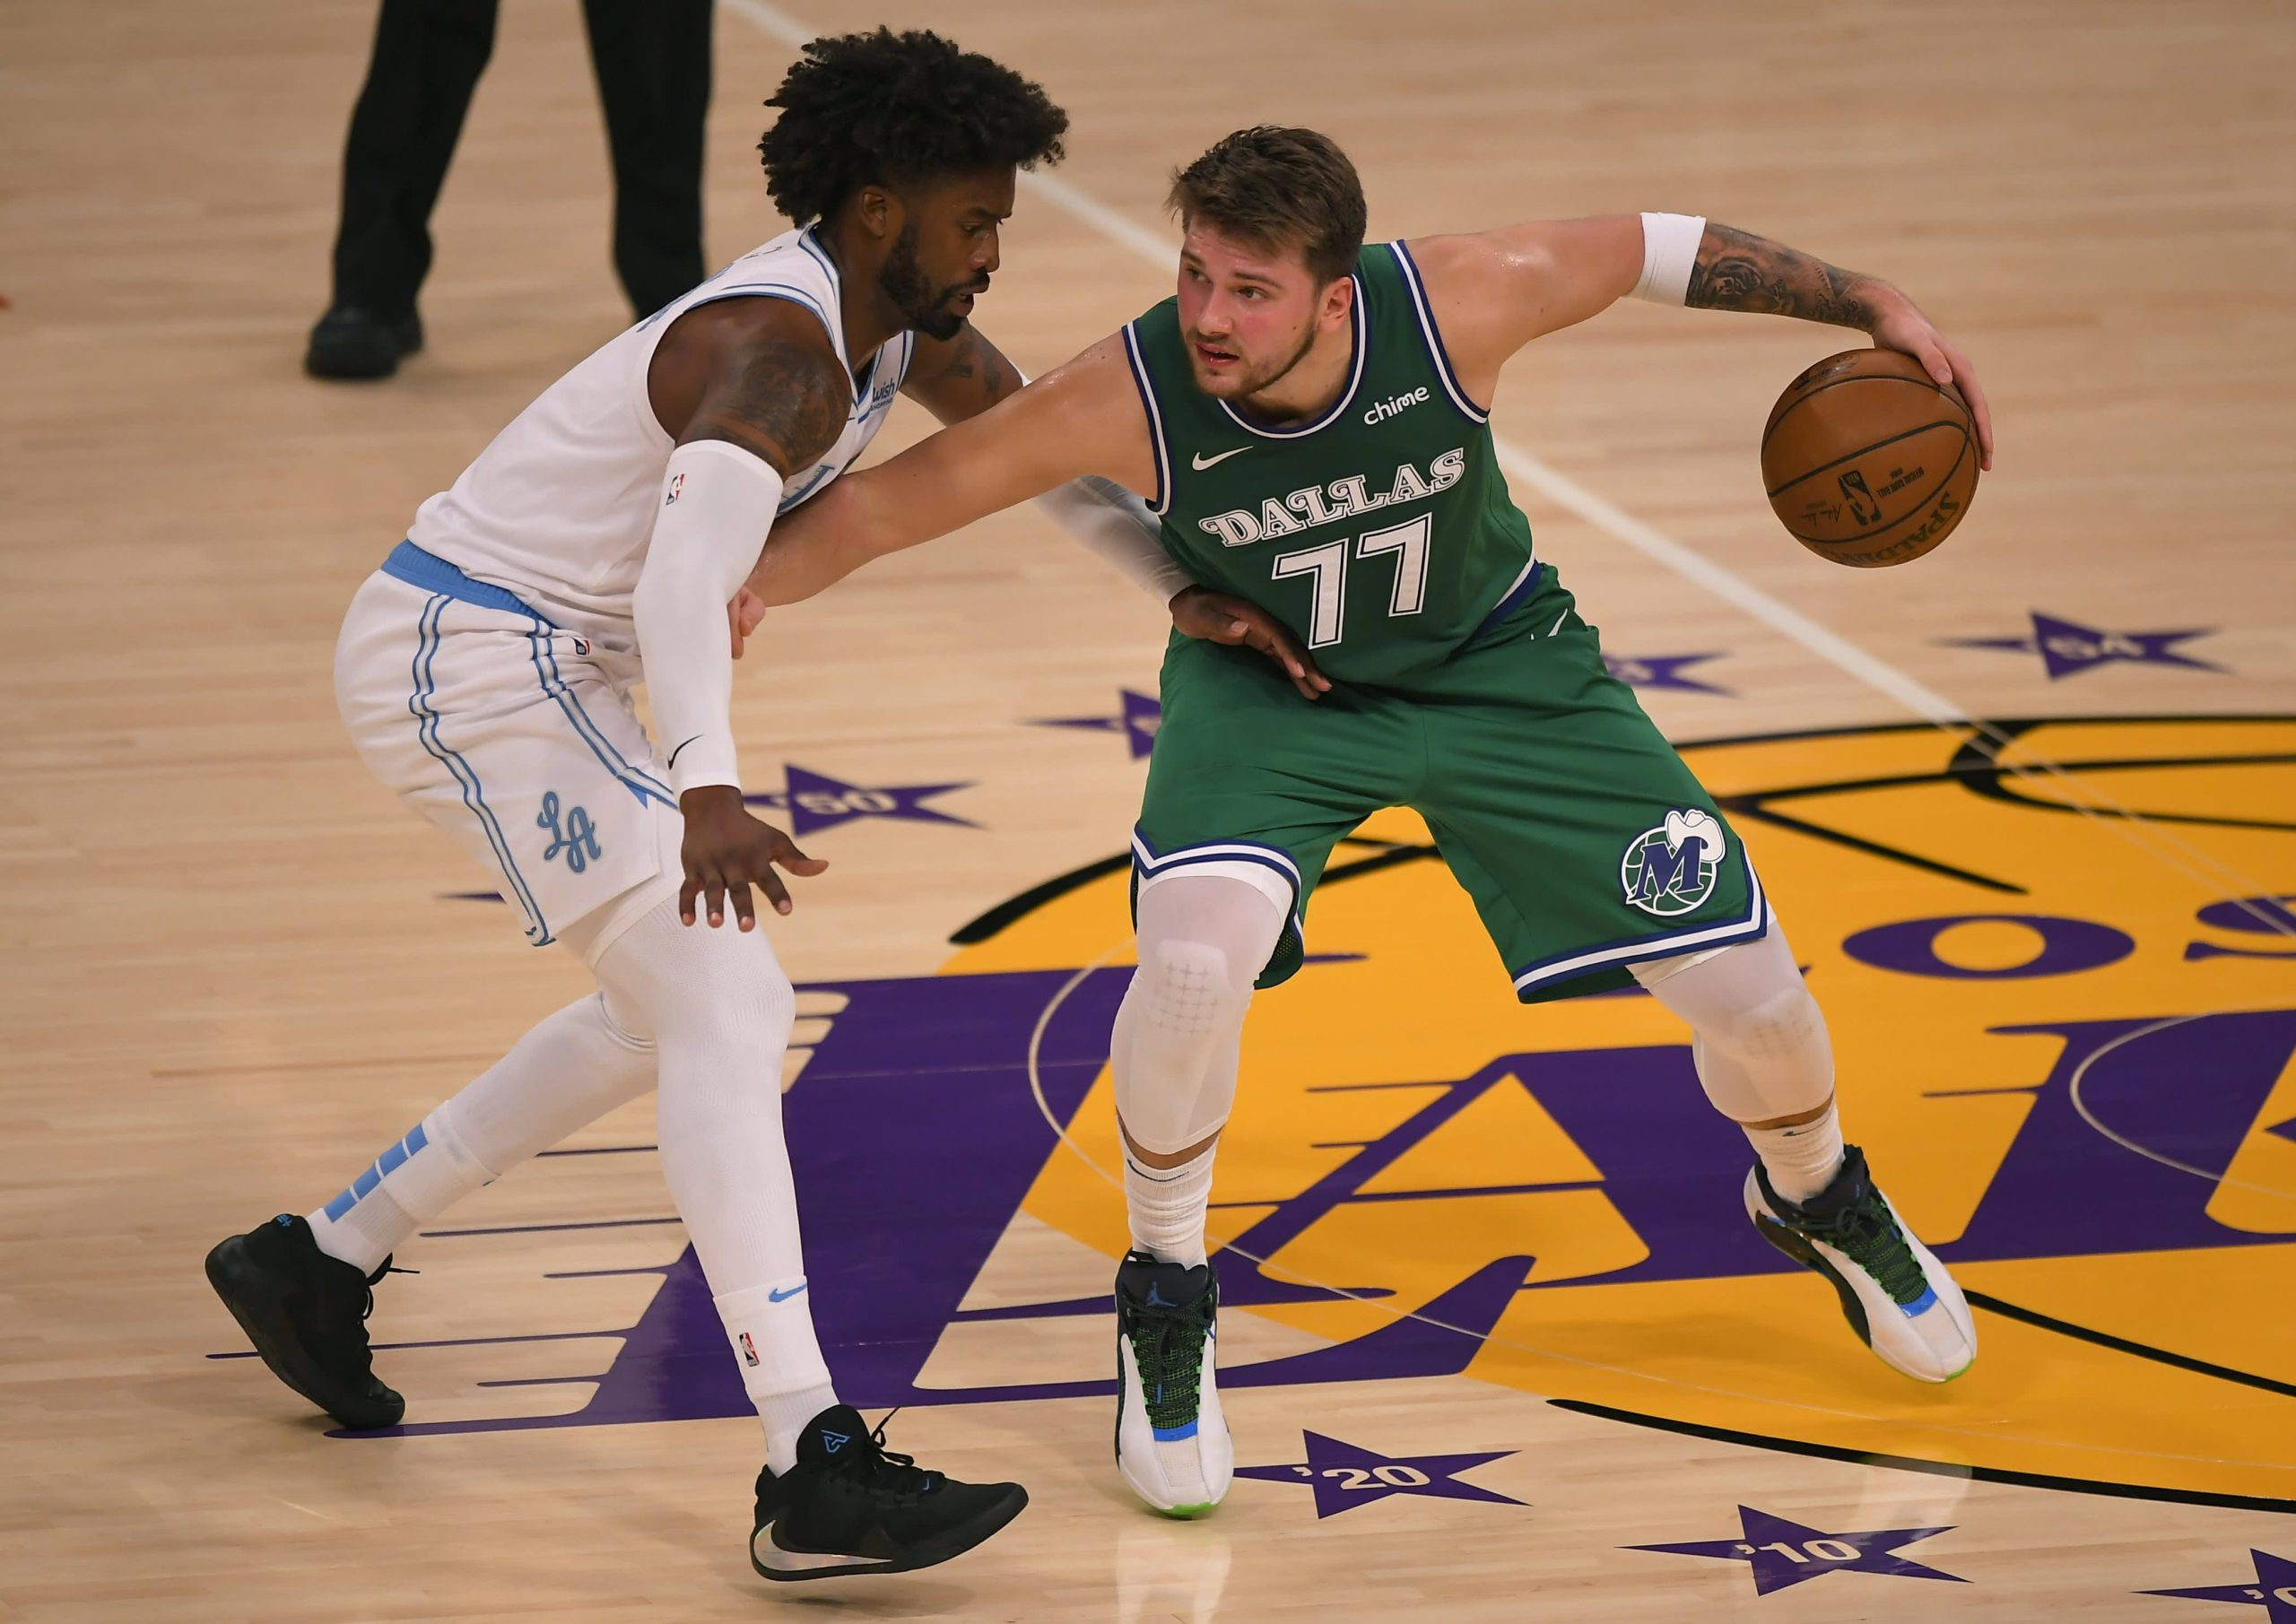 nba-opening-week-is-the-best-since-2012-following-covid-viewership-hit